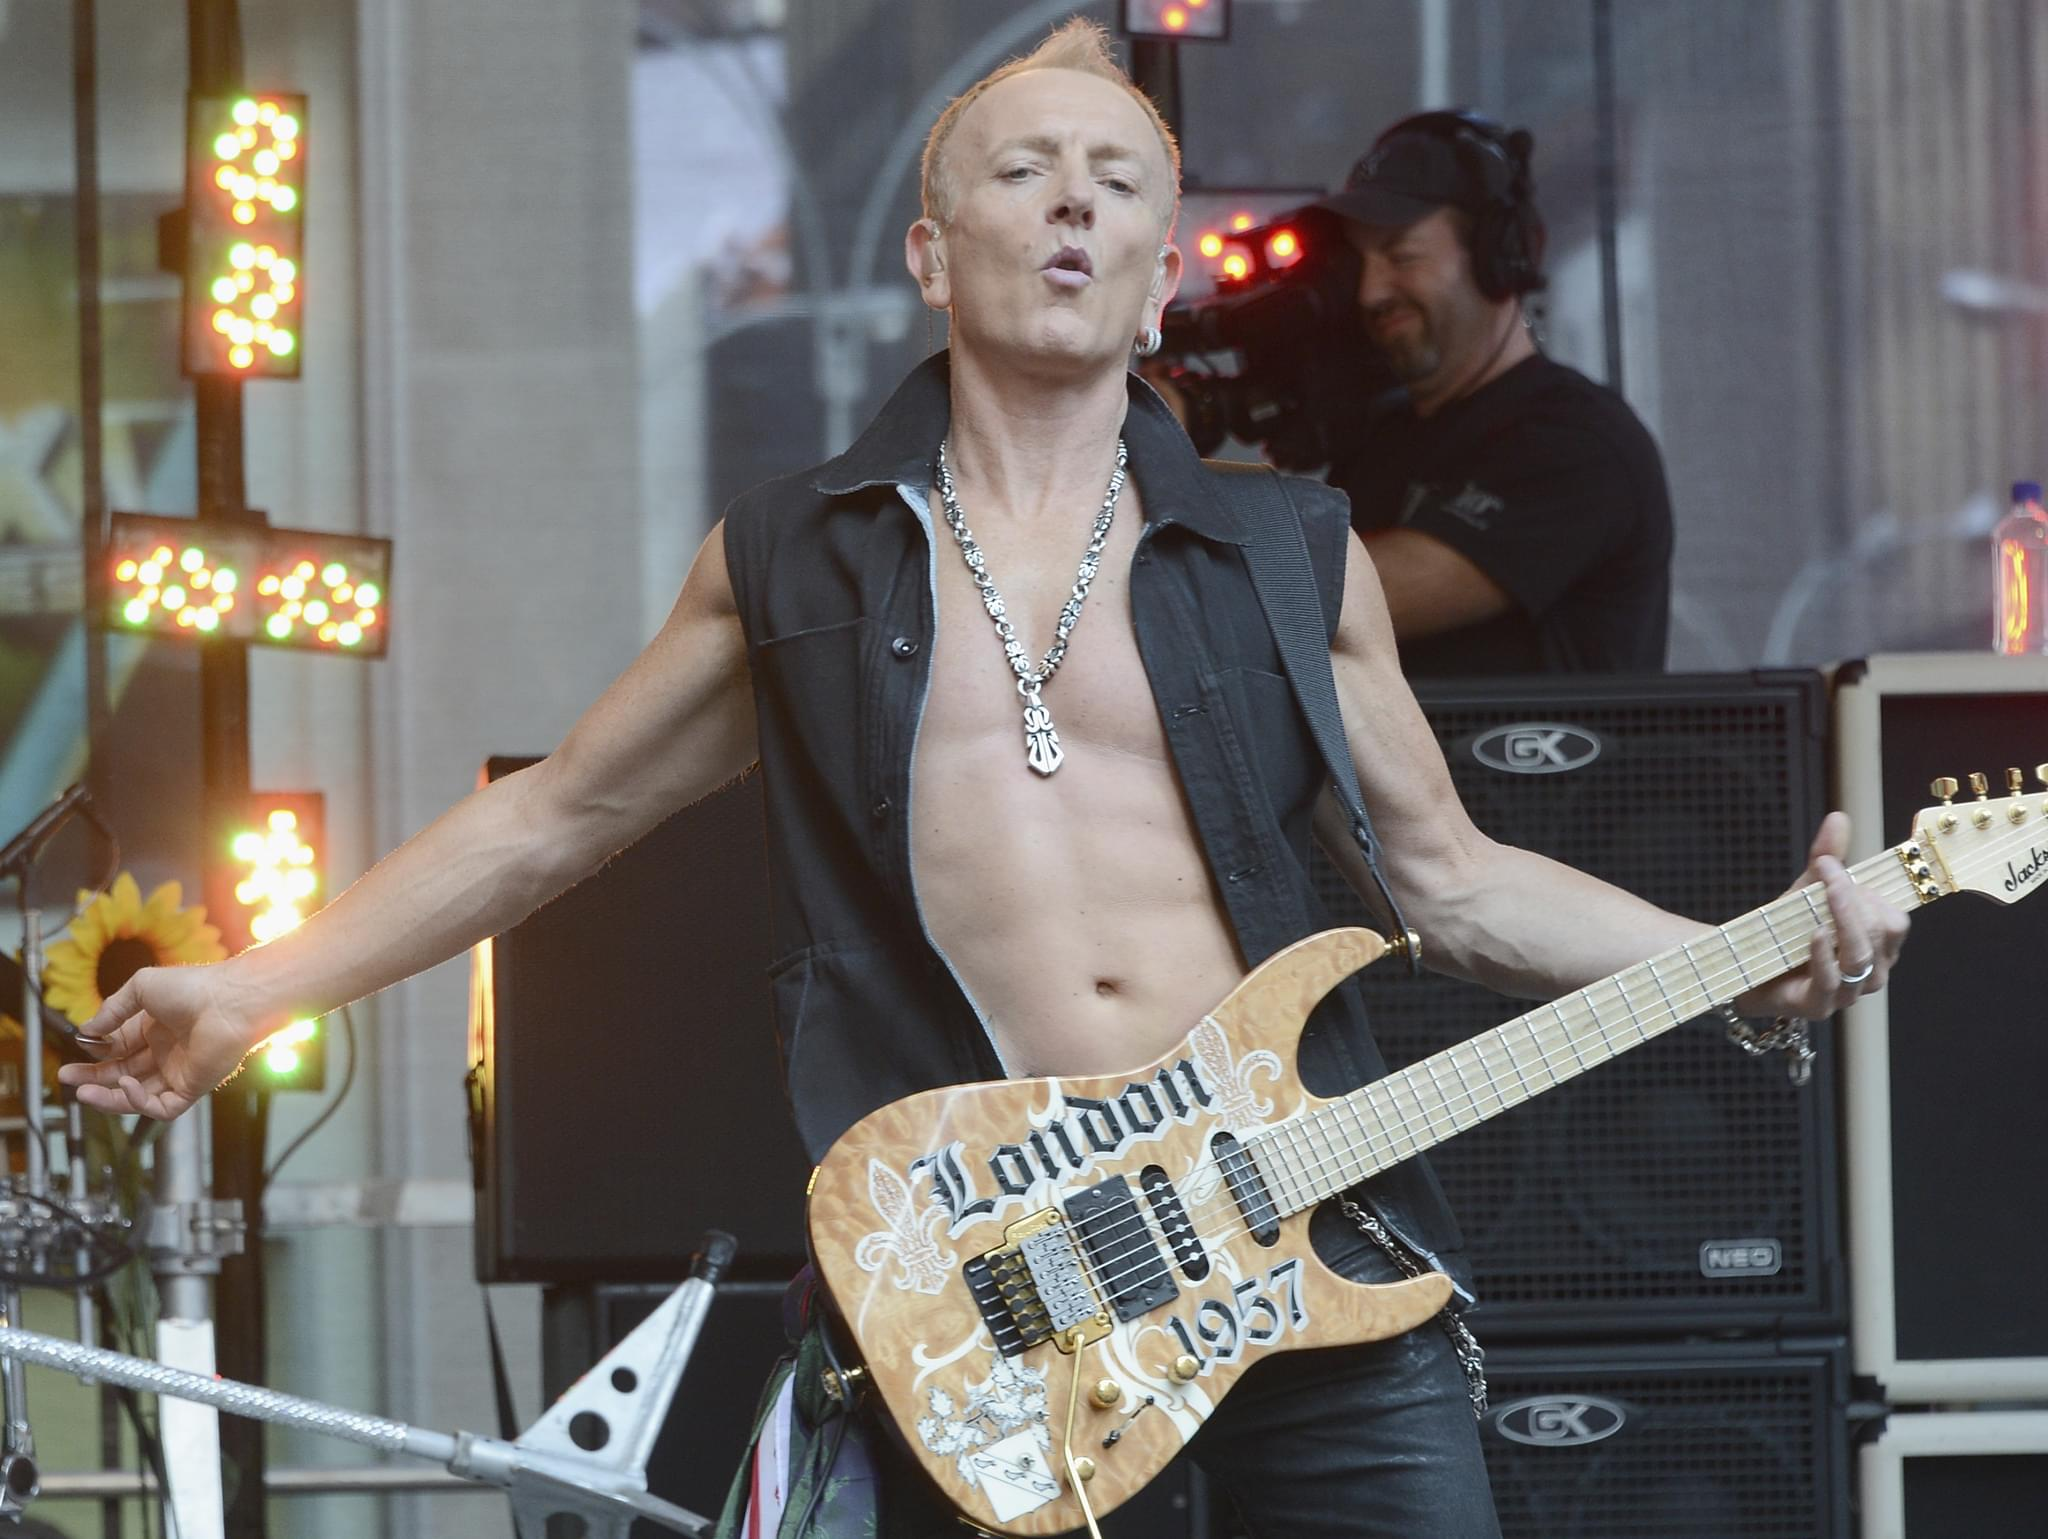 LISTEN: PHIL COLLEN OF DEF LEPPARD, INTERVIEWED BY JACKSON